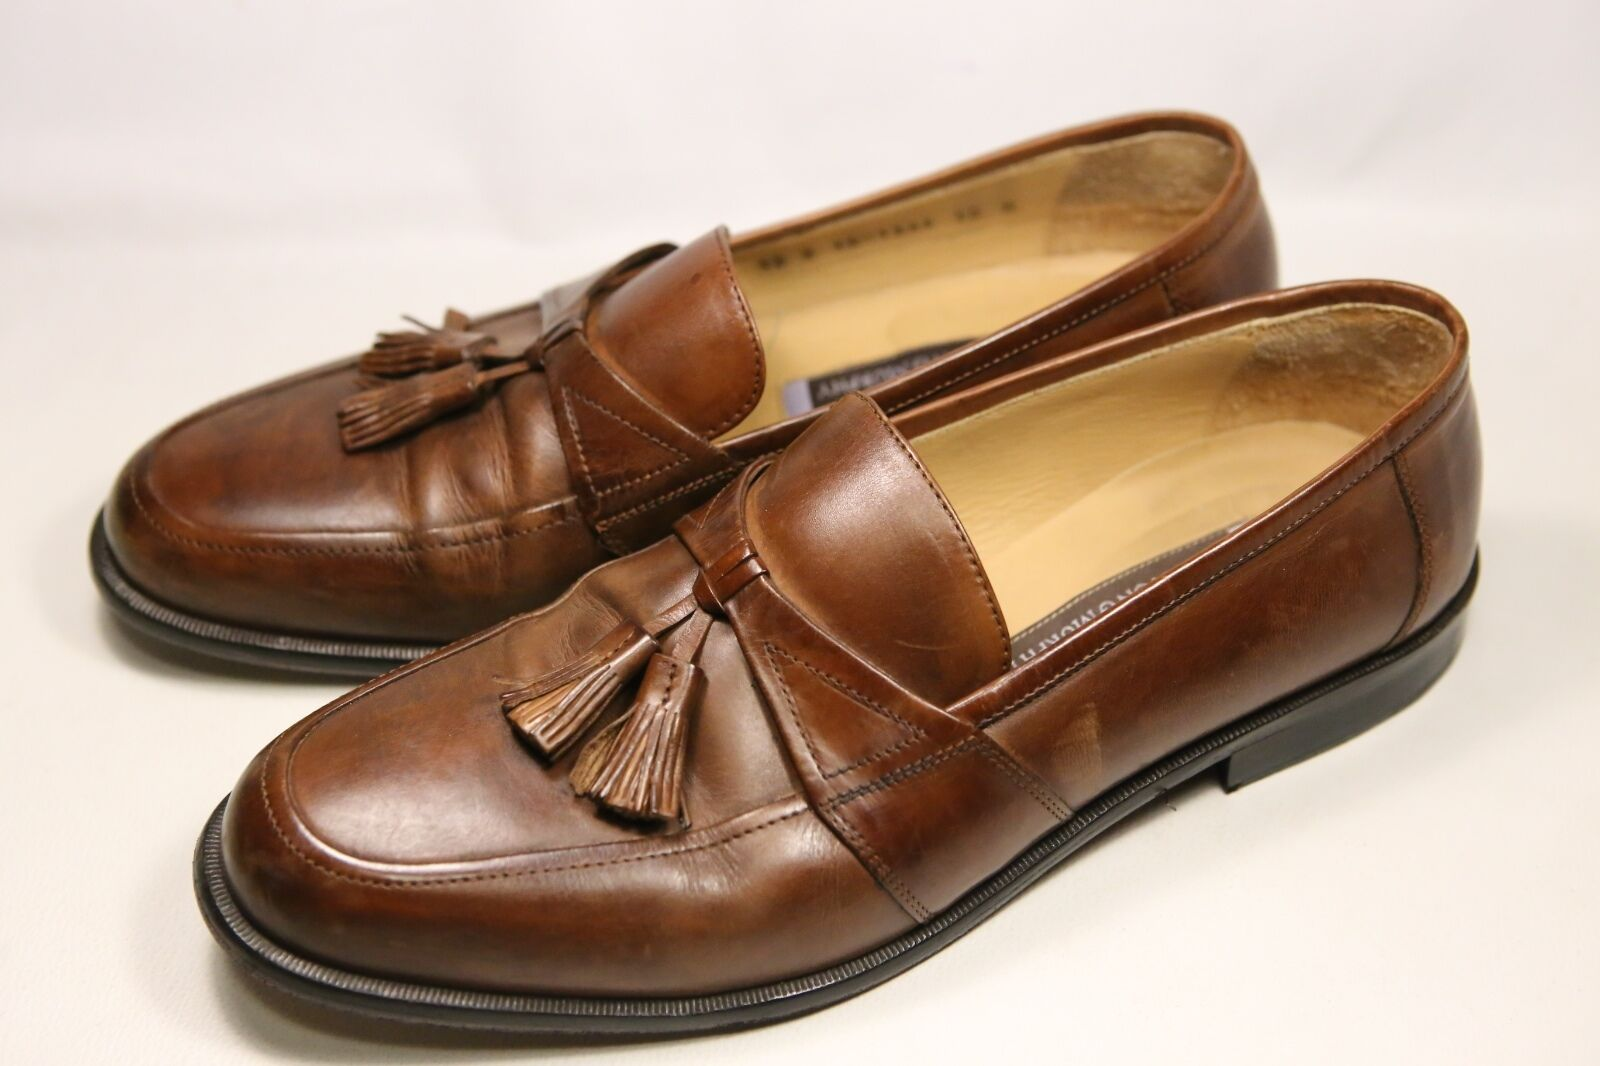 Men's Leather Johnston & Murphy Brown Leather Men's Loafers 10M edefc9